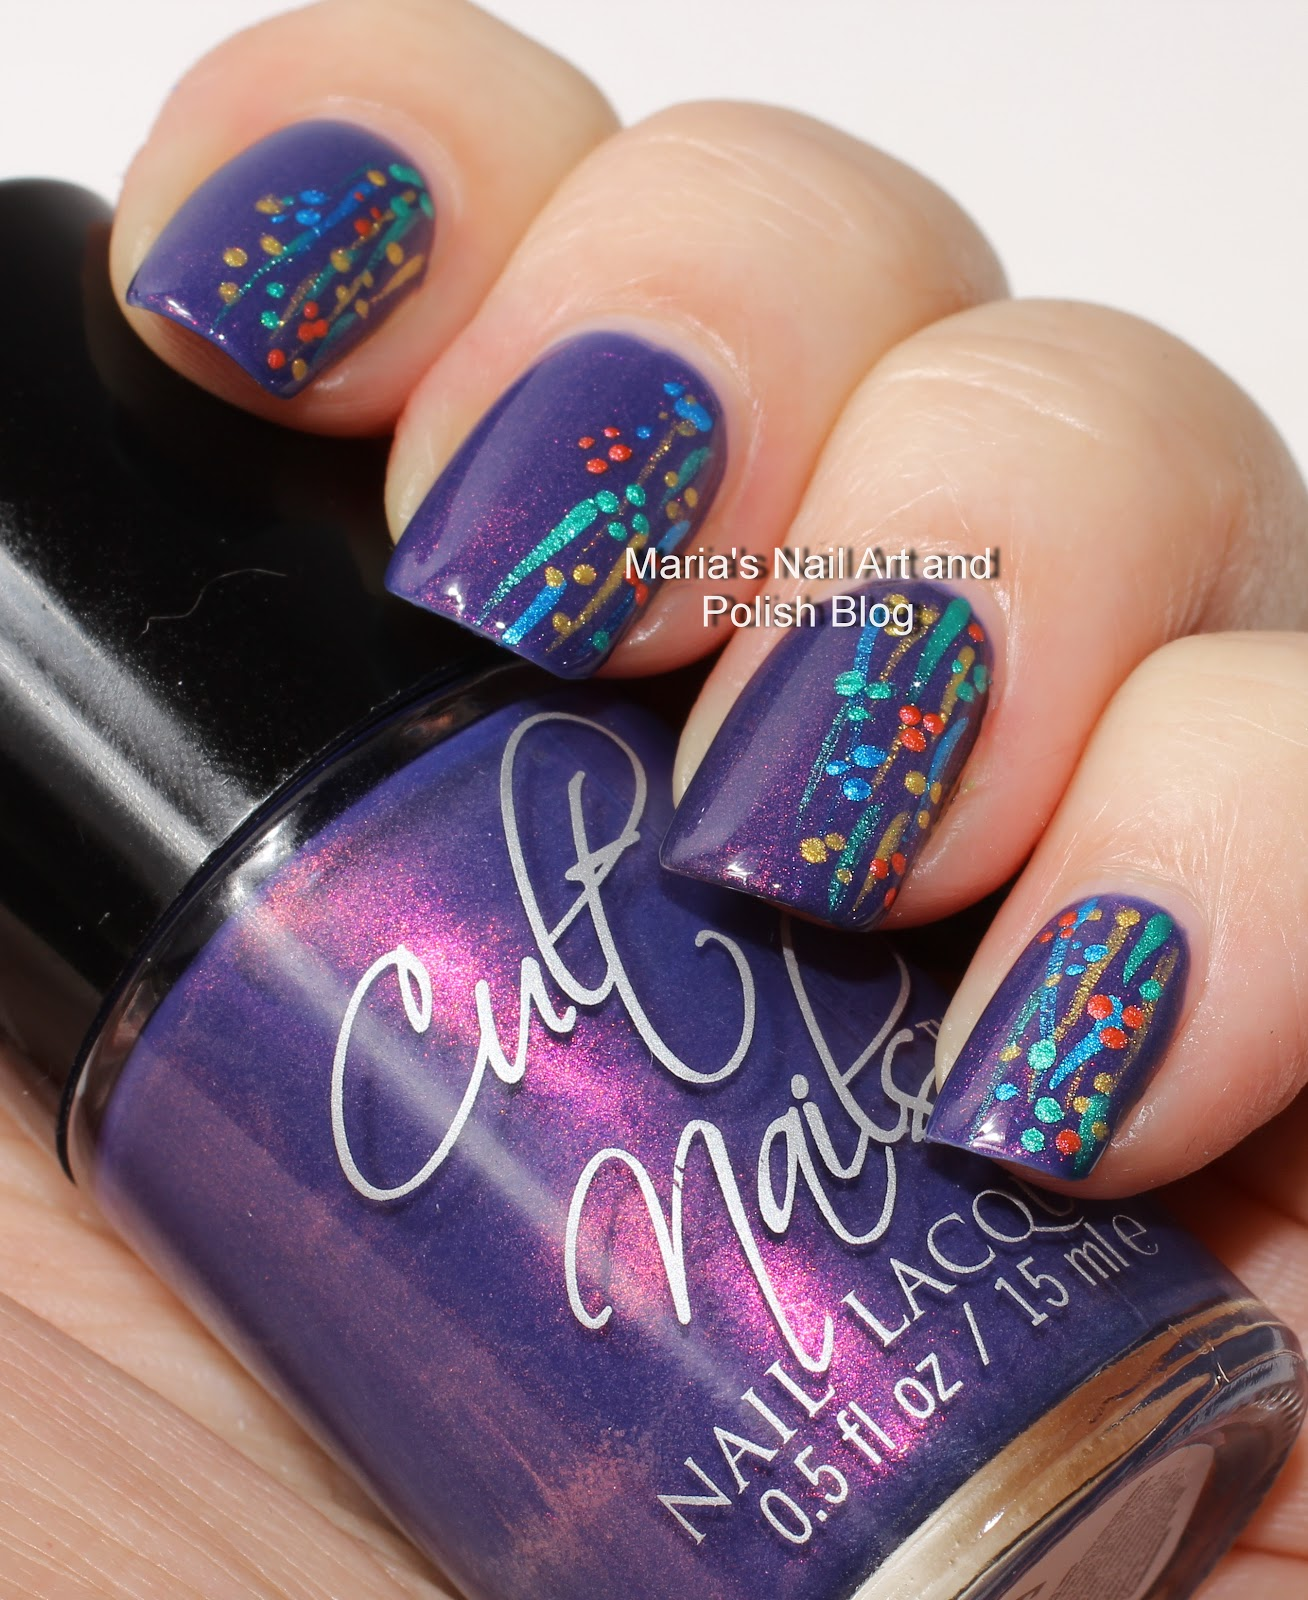 Simple Constellation Nail Art: Marias Nail Art And Polish Blog: Flushed With Stripes And